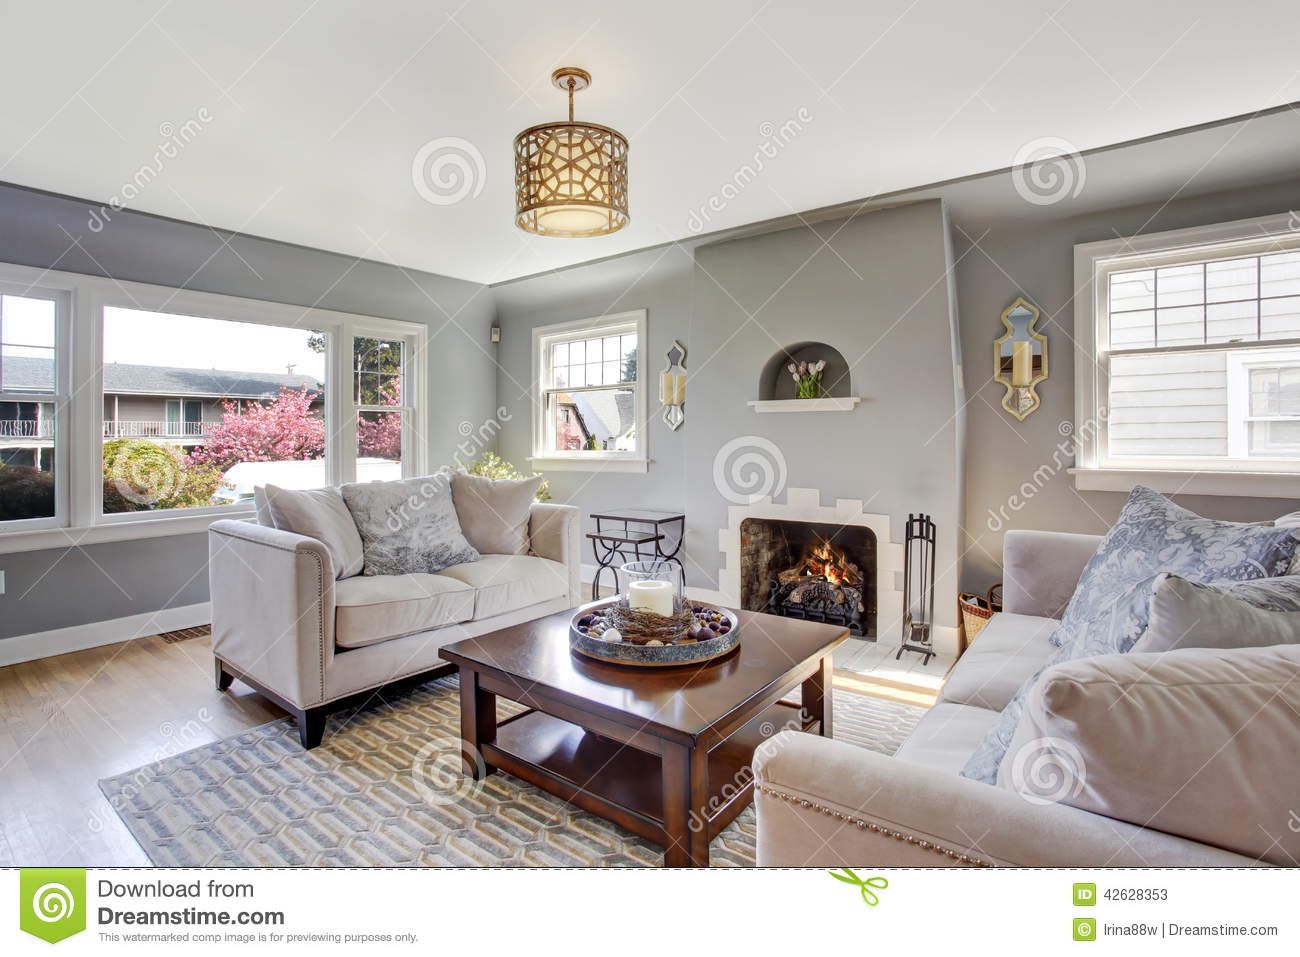 Light Grey Living Room With White Sofas And Fireplace Stock